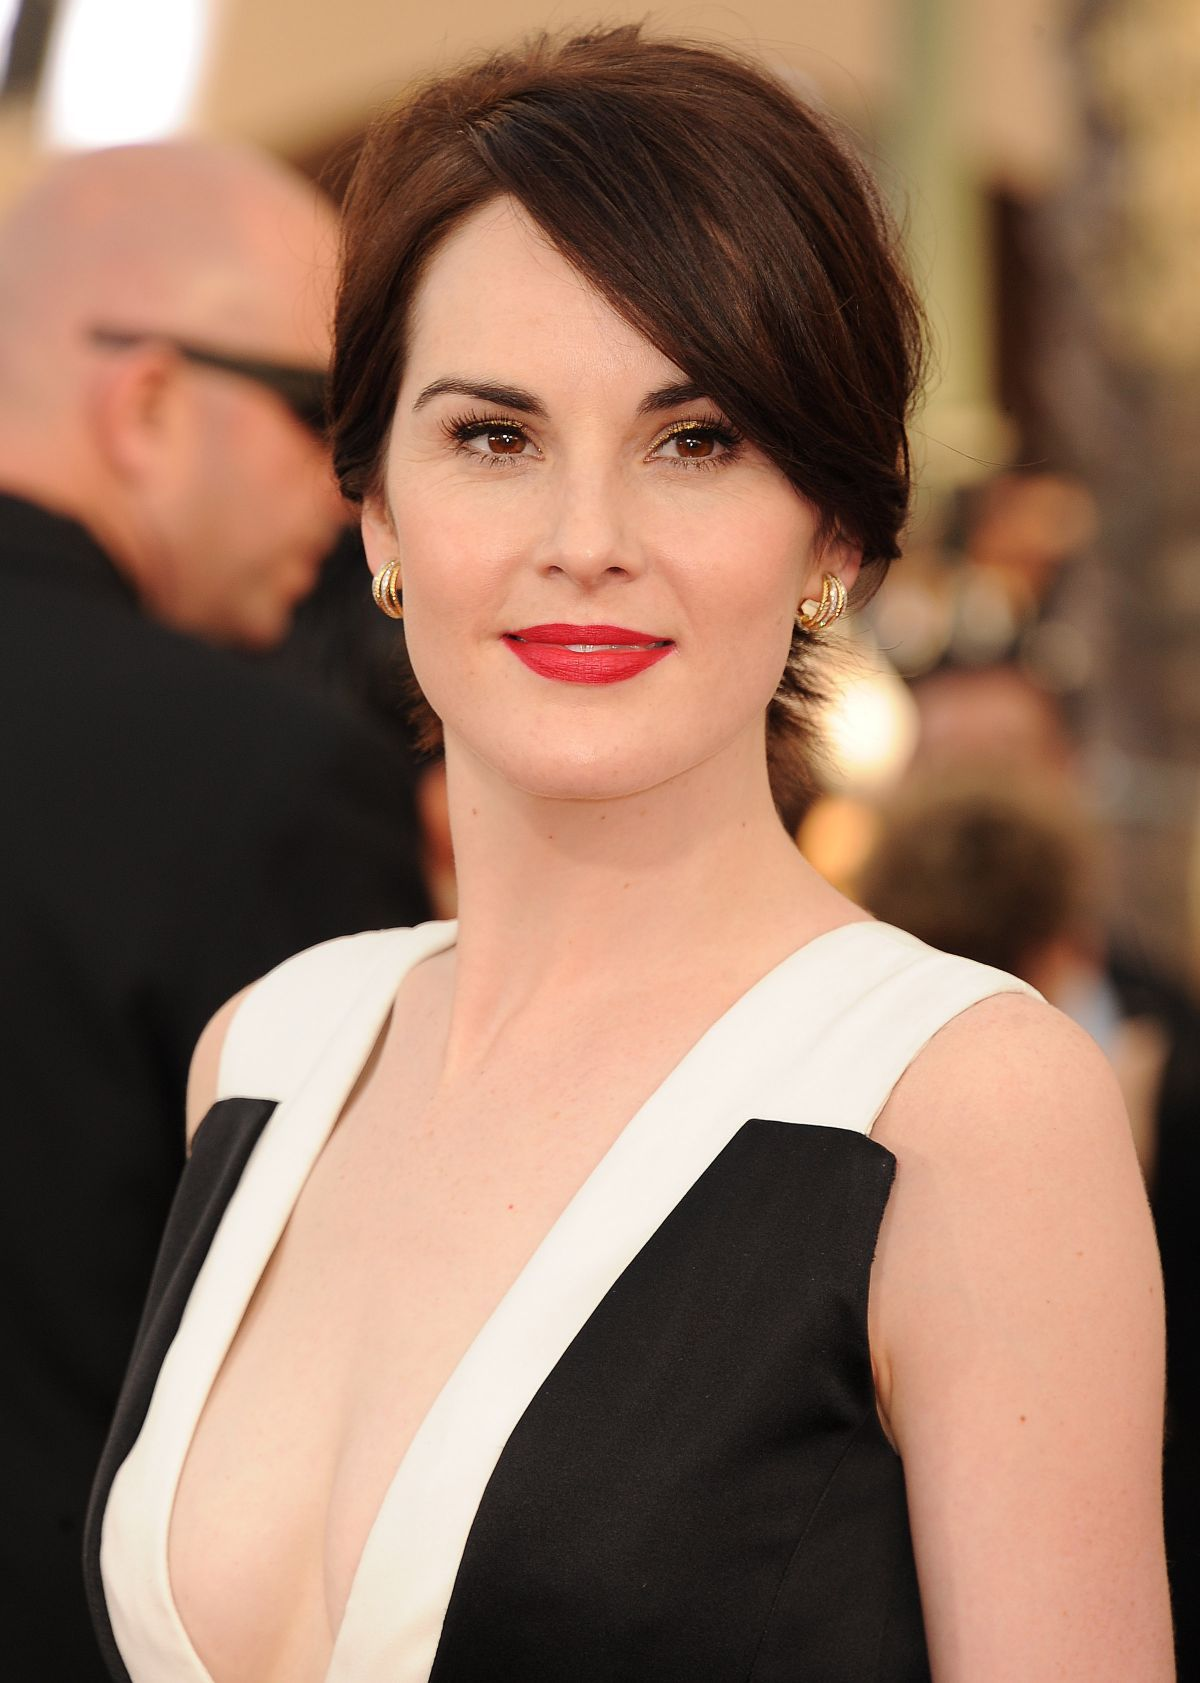 Celebrity Michelle Dockery naked (57 photo), Sexy, Leaked, Twitter, panties 2006